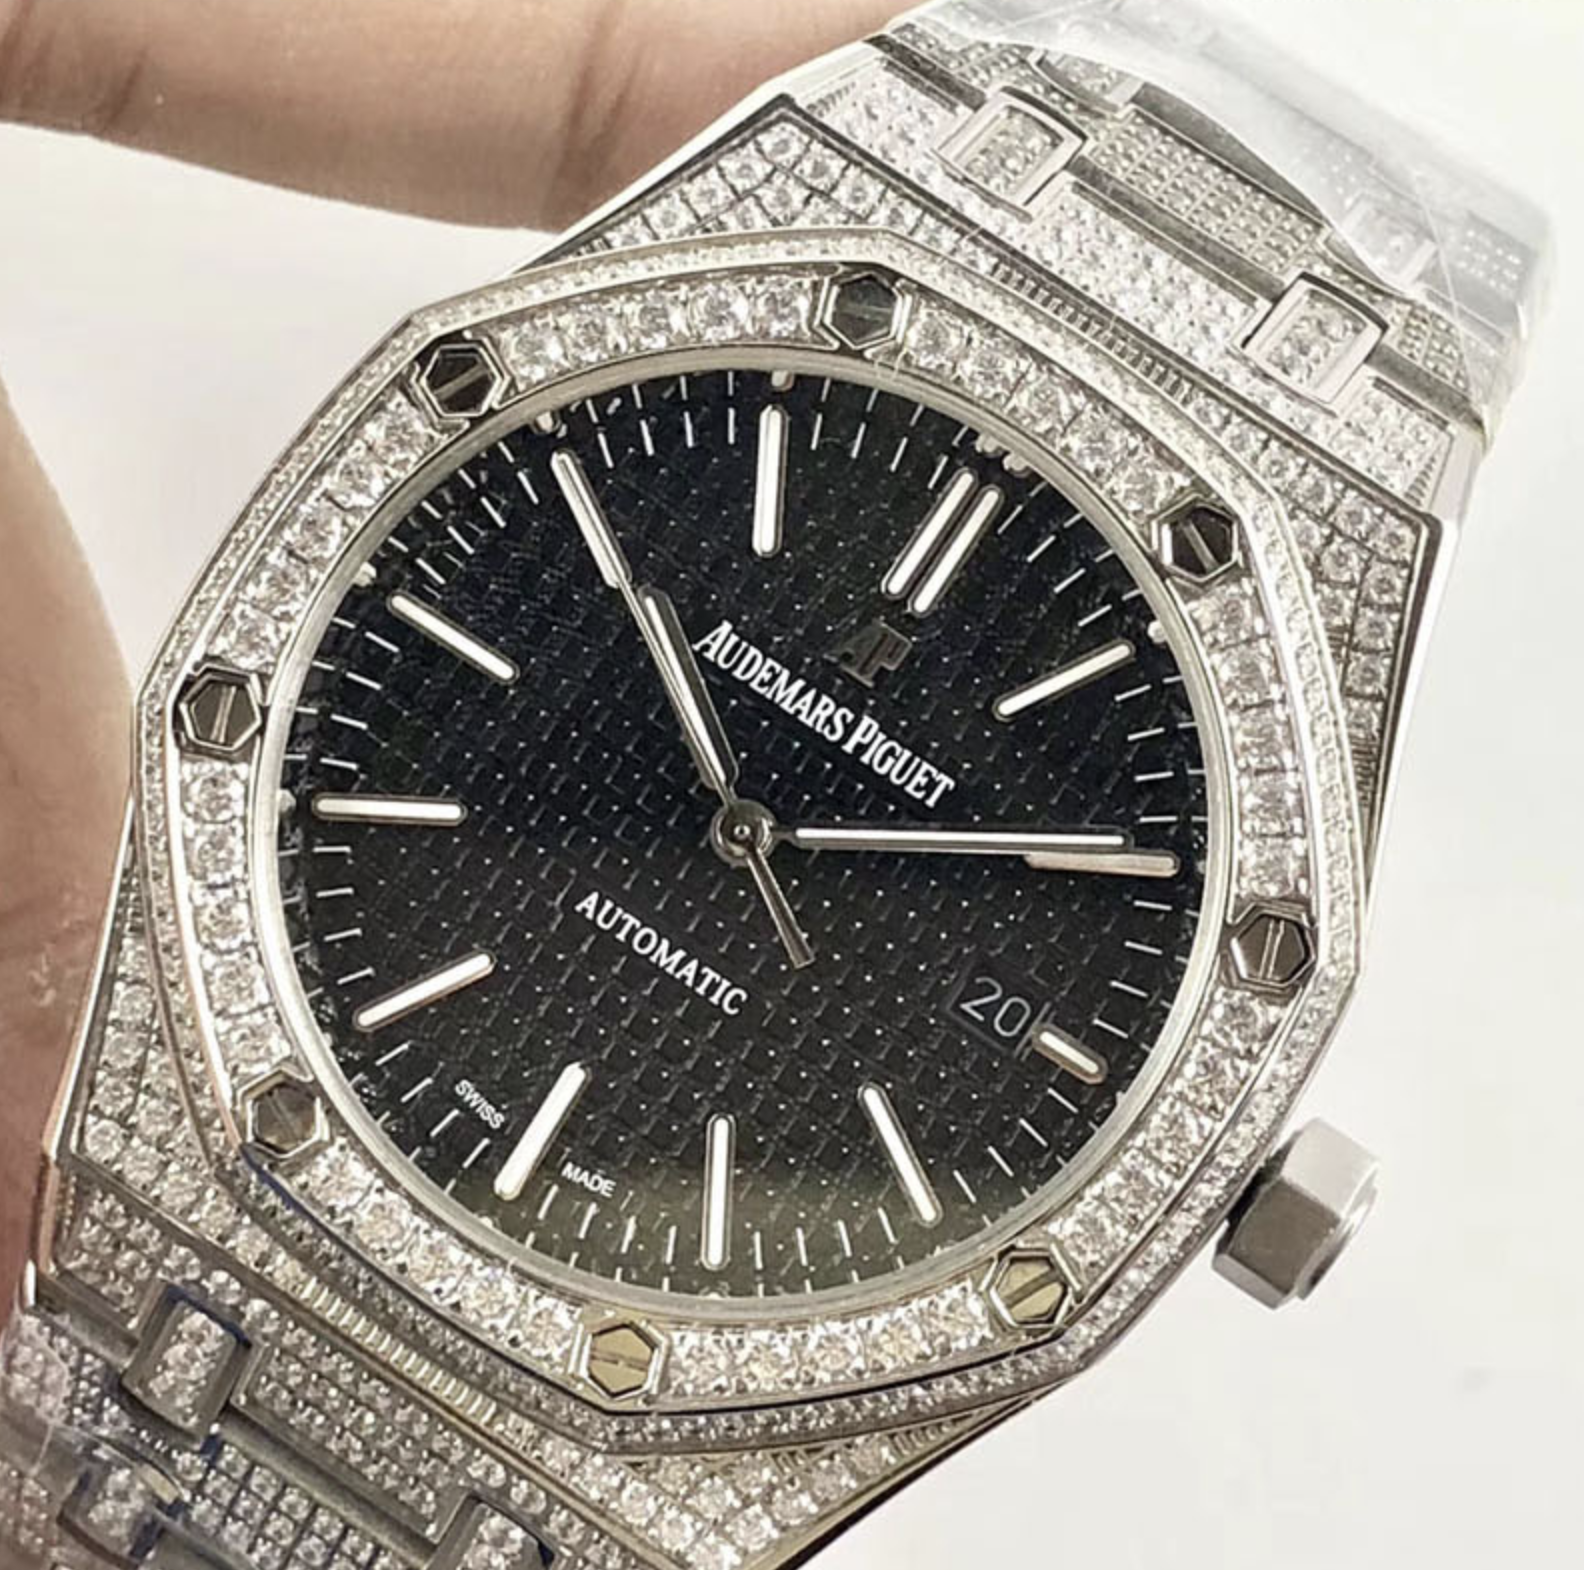 Audemars piguet replica royal oak 15400ST 41mm white gold full paved diamonds black dial